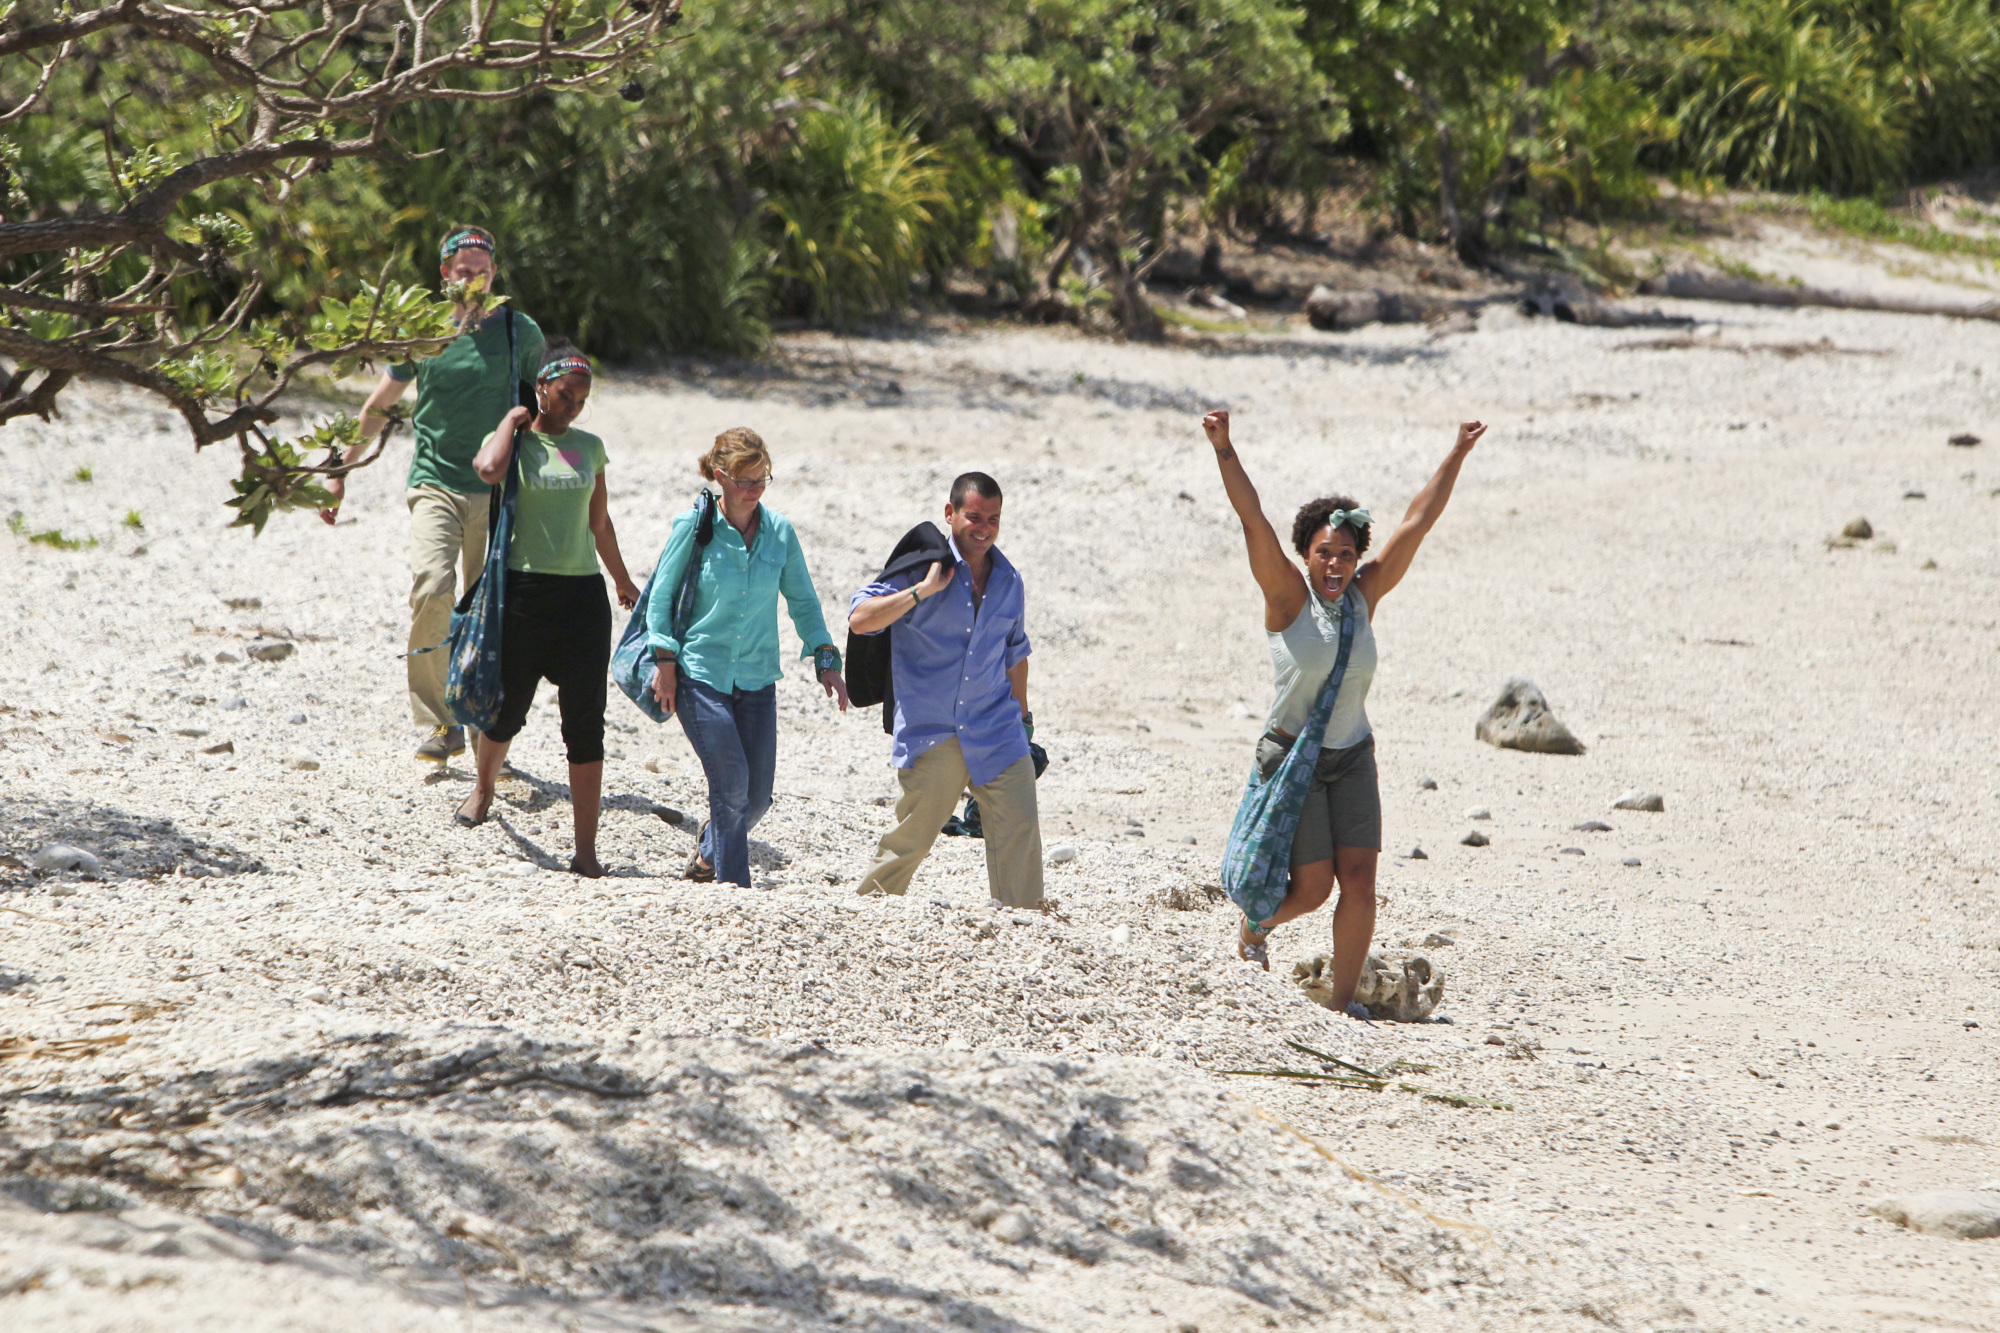 Walking to camp in the Season 28 premiere